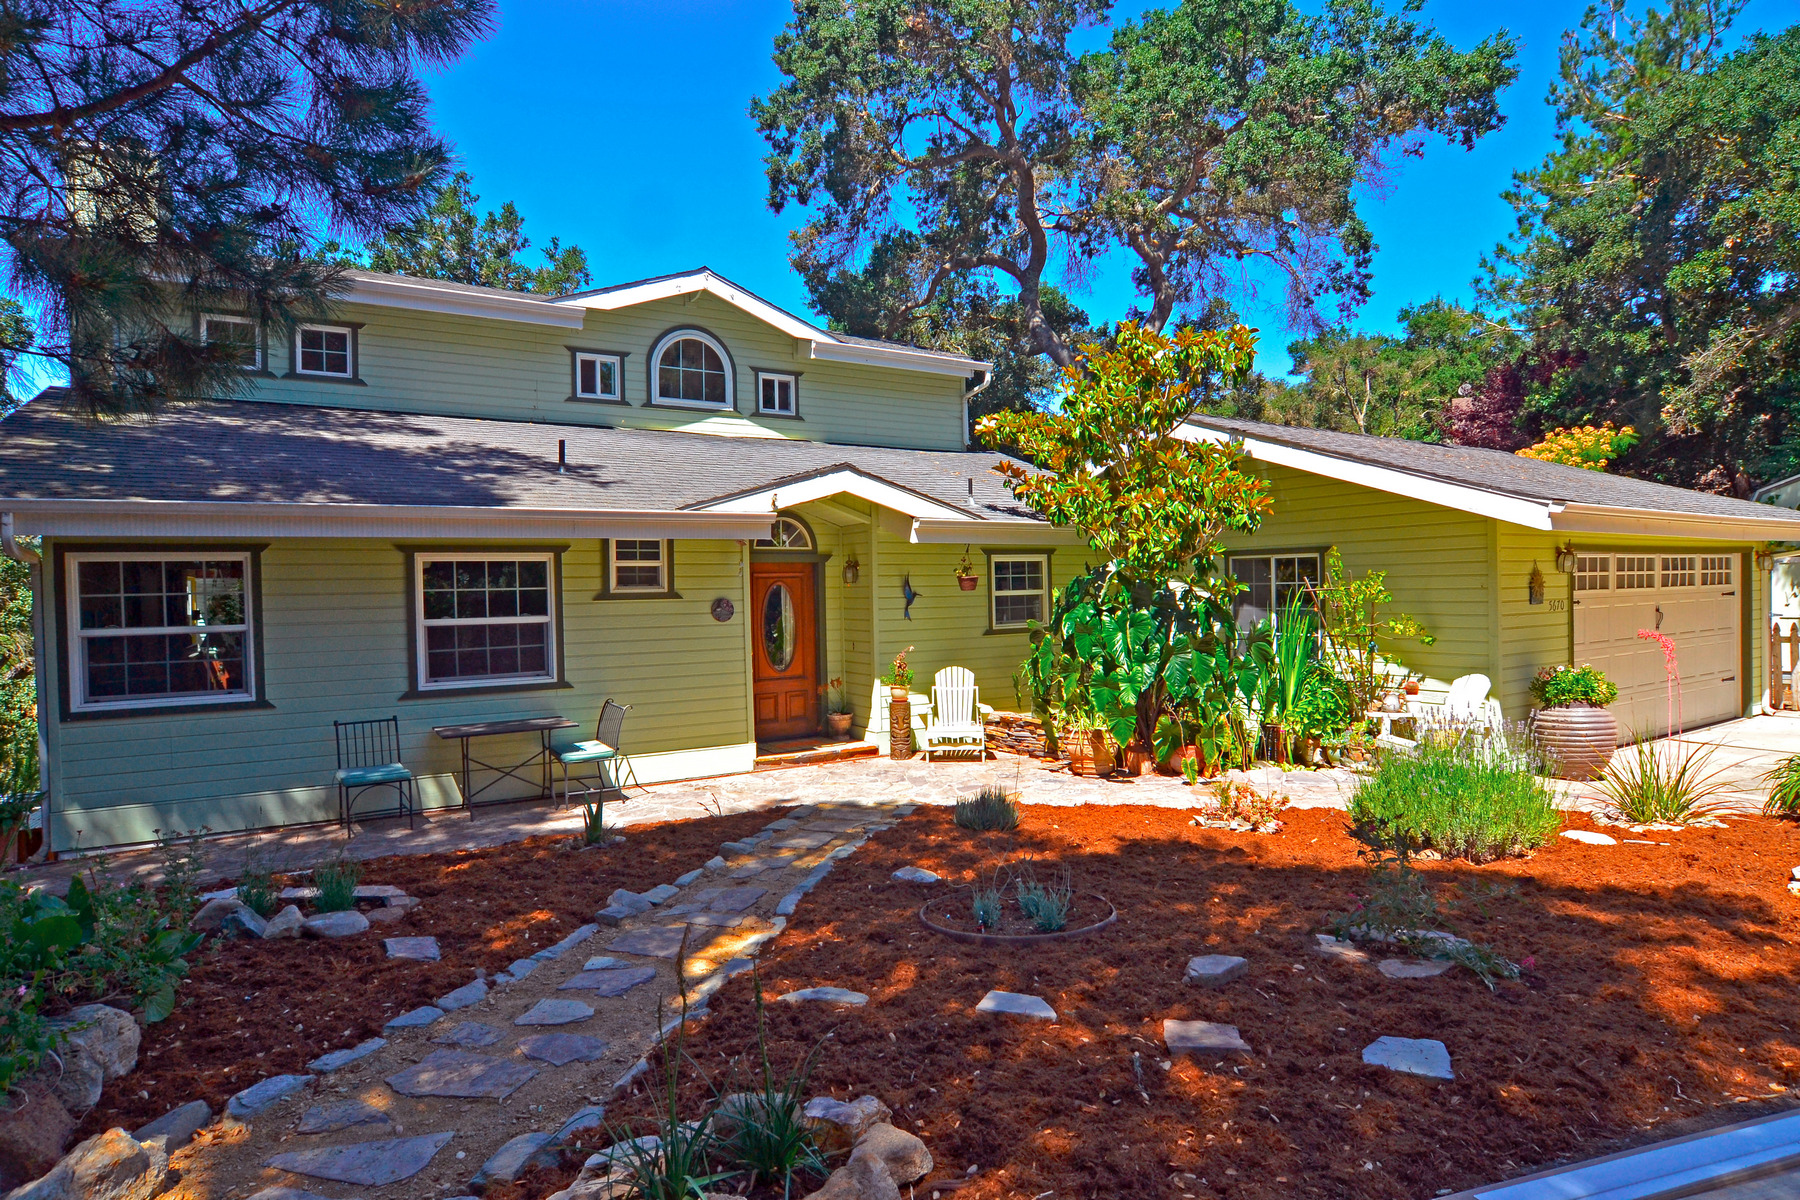 Single Family Home for Sale at Tree House Feel 5670 Encino Avenue Atascadero, California, 93422 United States